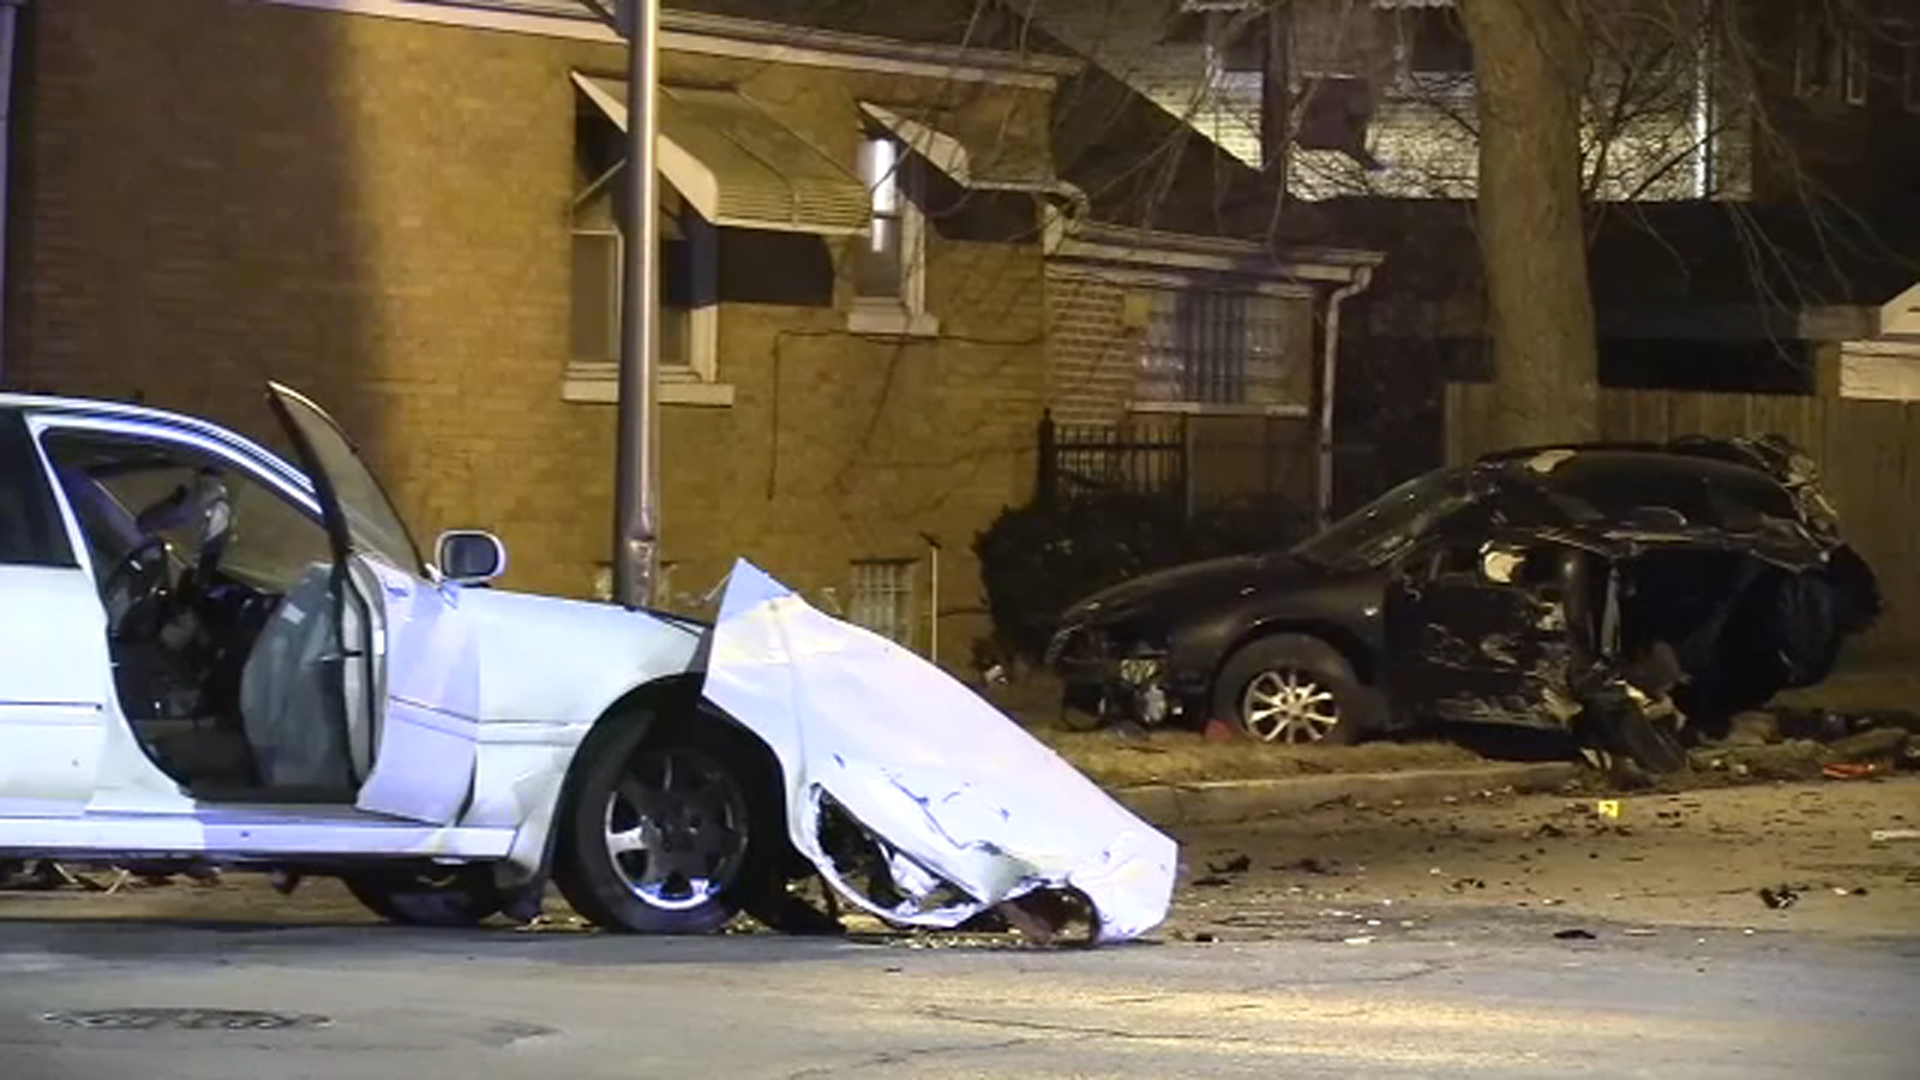 Girl, 2, Killed In Crash Involving Car Being Chased By